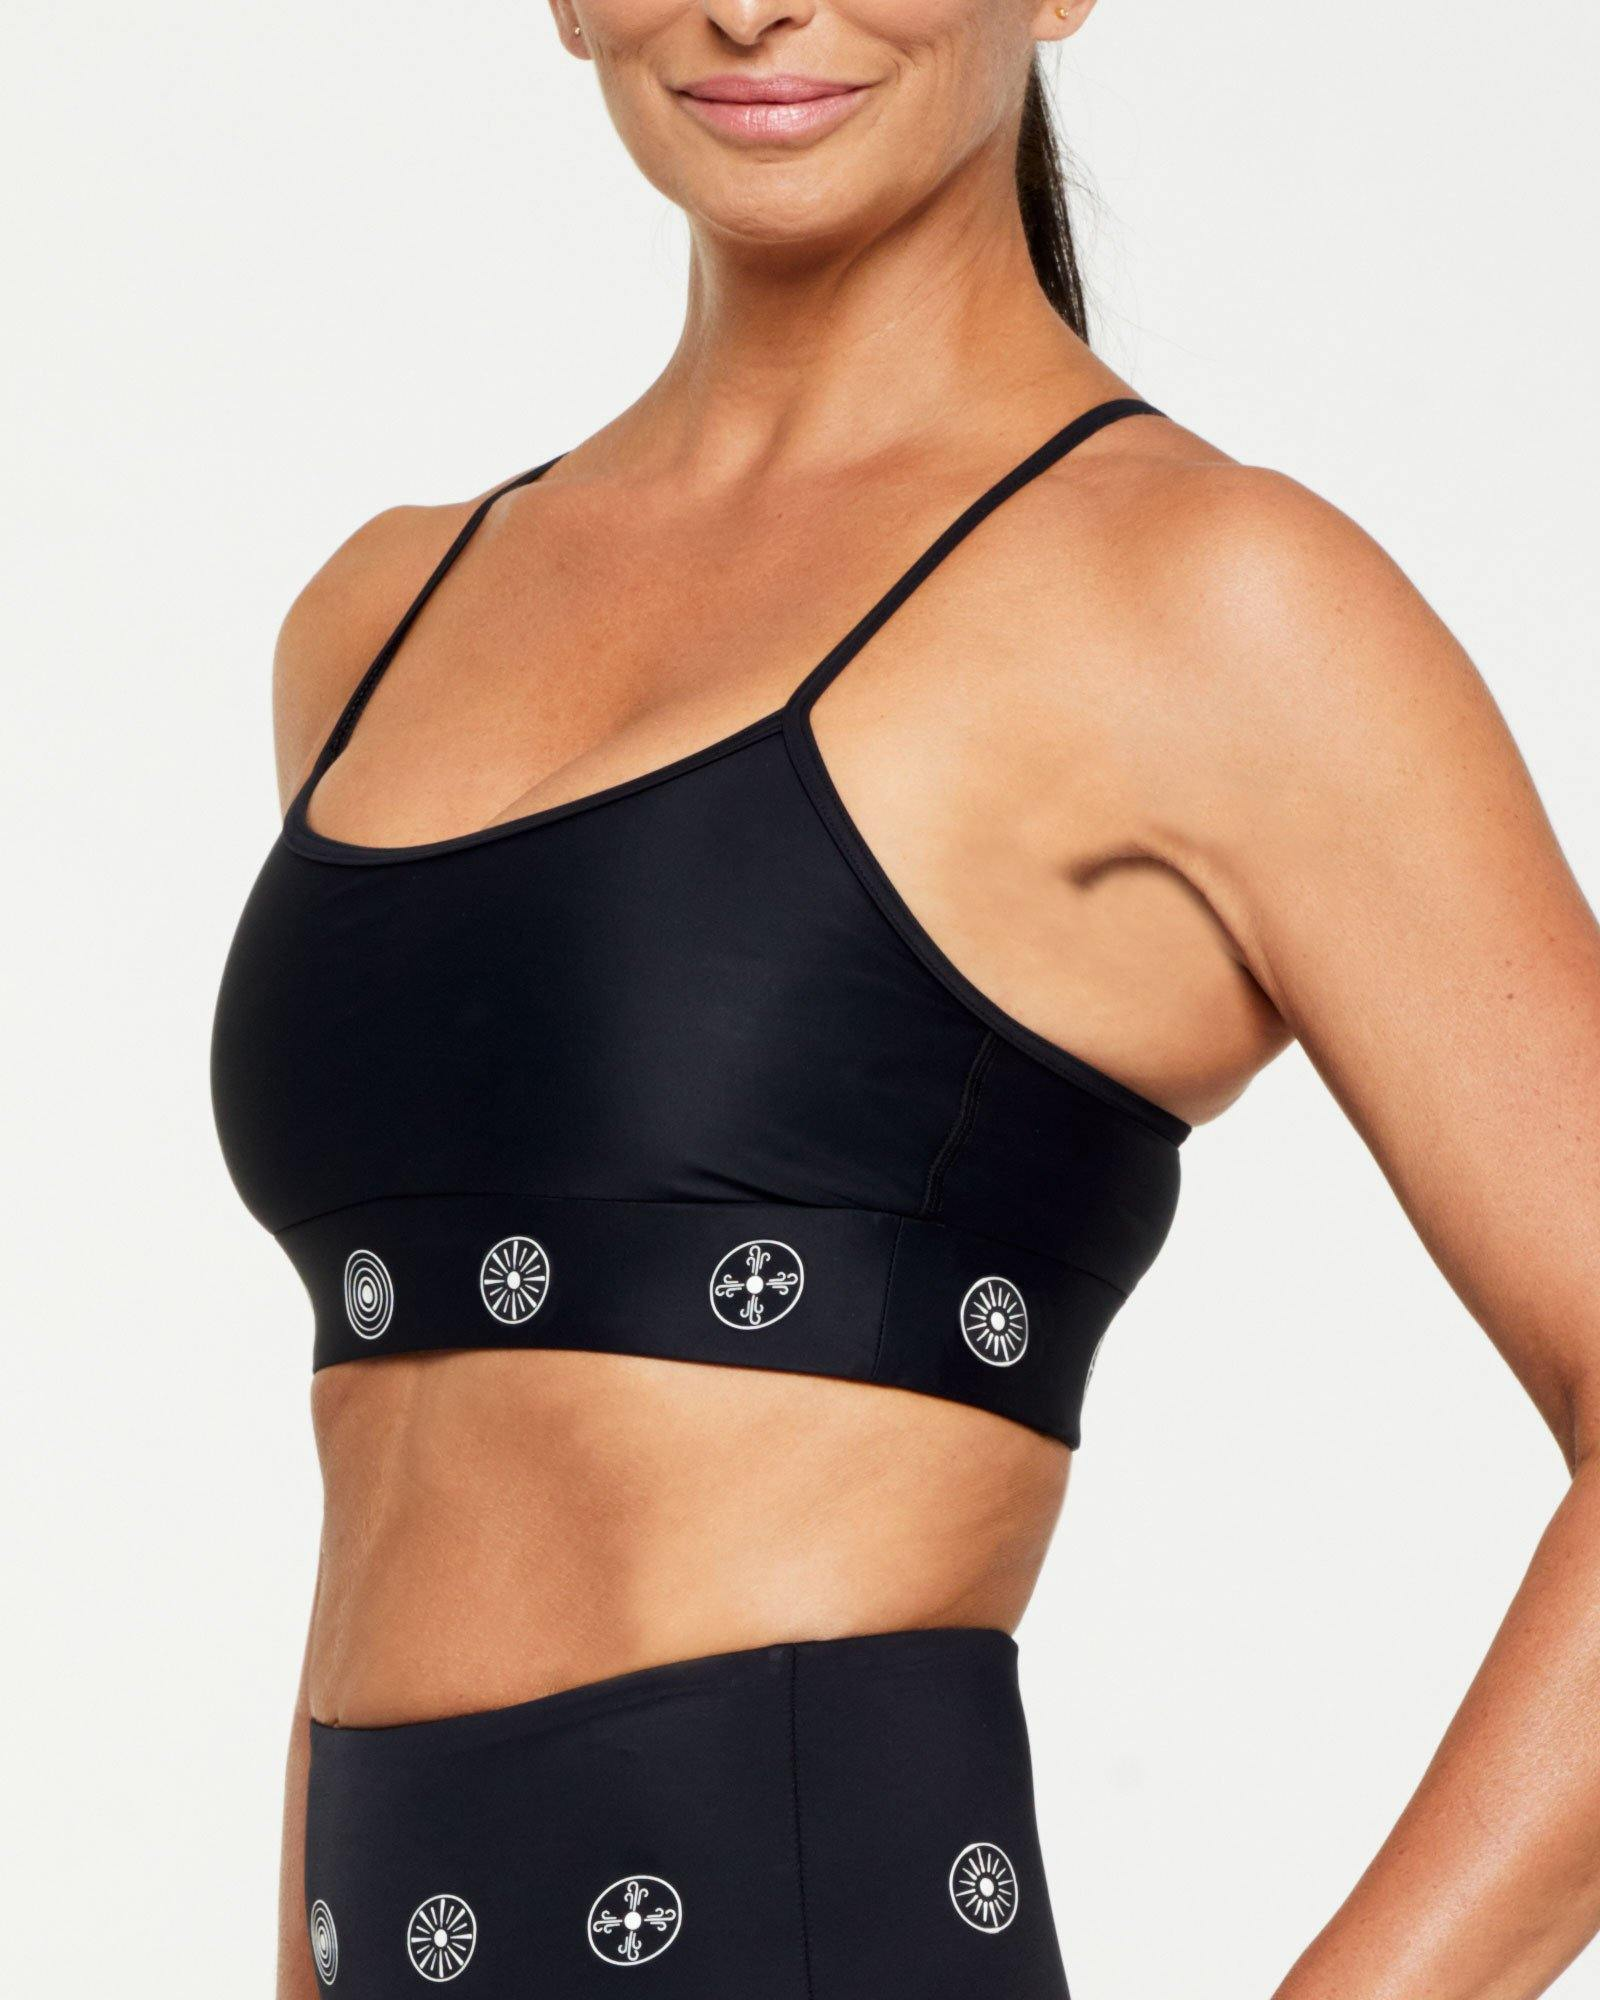 Companion Infraspinatus Bra top, BLACK WITH WHITE SYMBOLS, SIDE VIEW